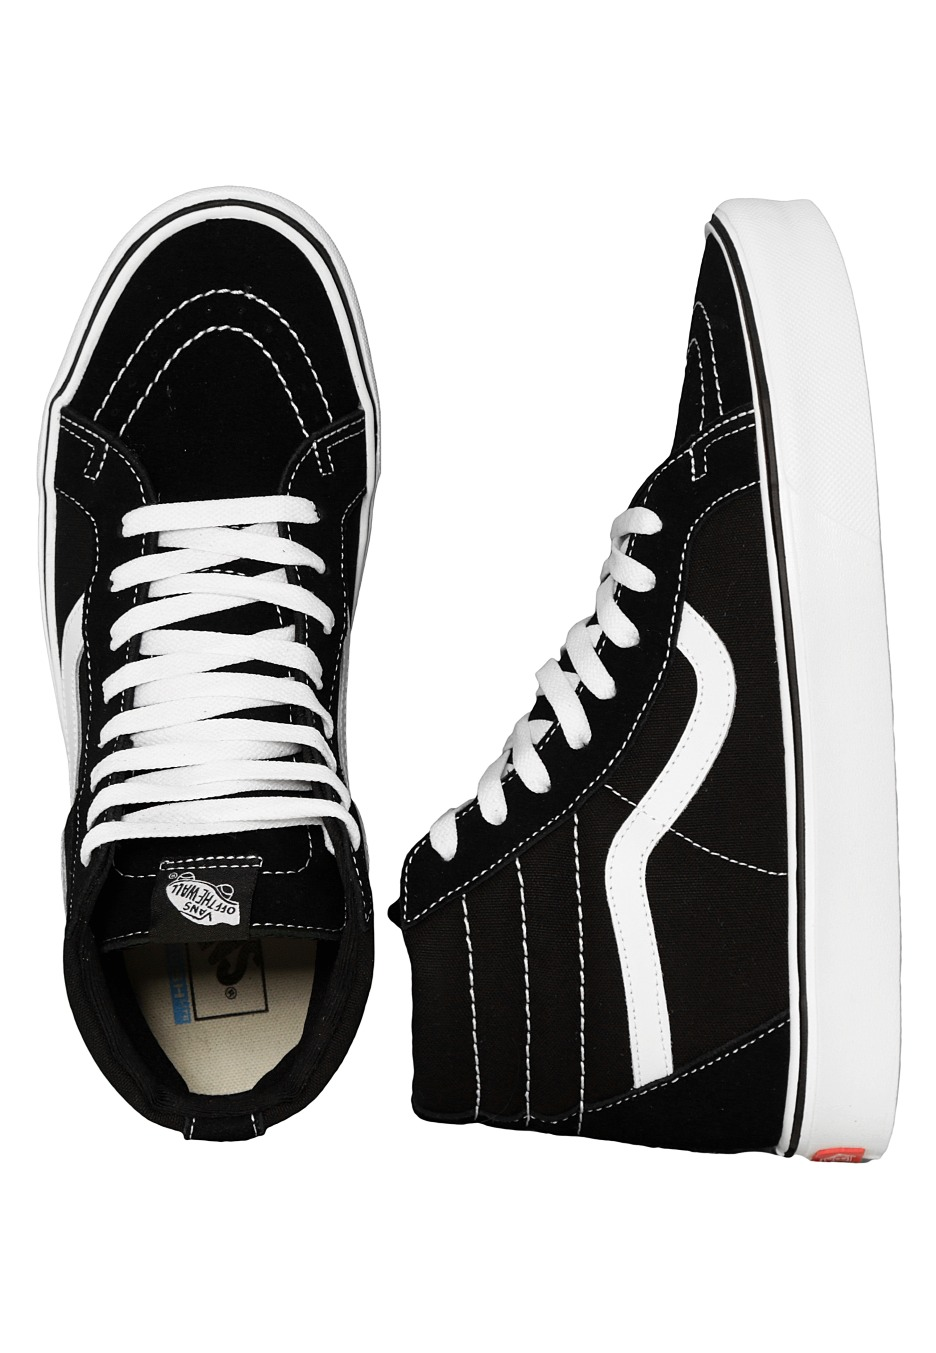 4bf44700c6b Vans - Sk8-Hi Lite + Suede Canvas Black White - Girl Shoes - Impericon.com  UK